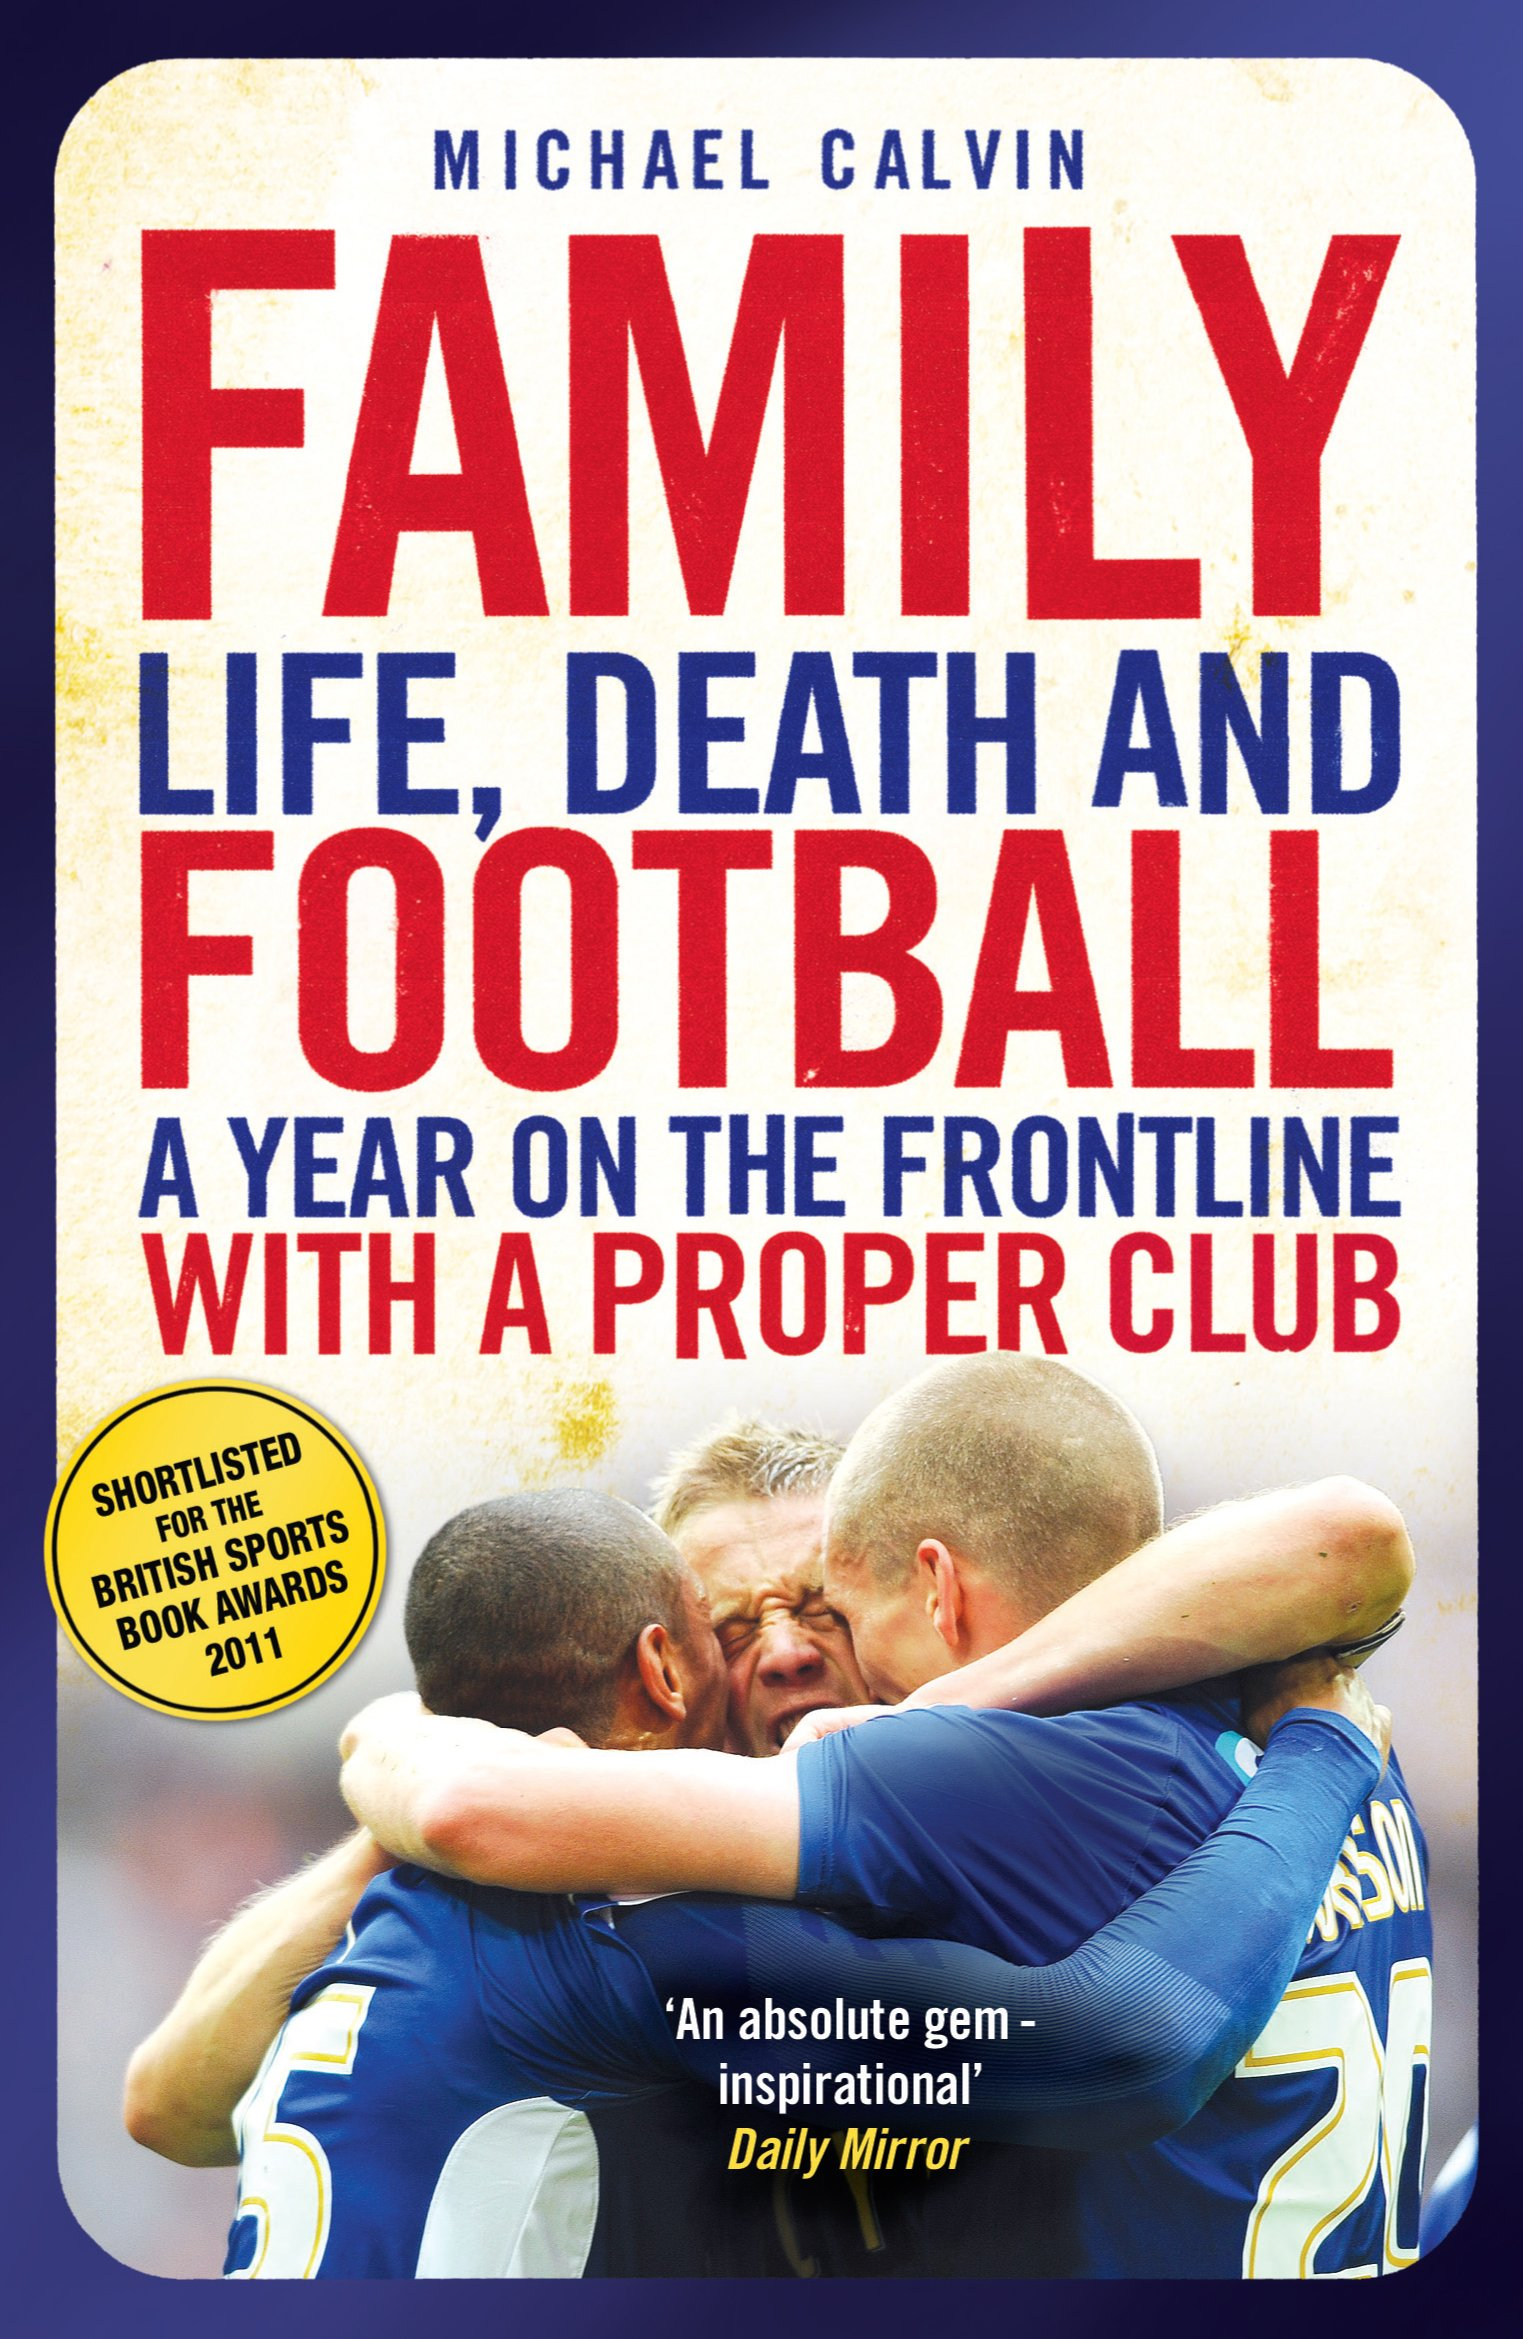 Image OfFamily: Life, Death And Football - A Year On The Frontline With A Proper Club